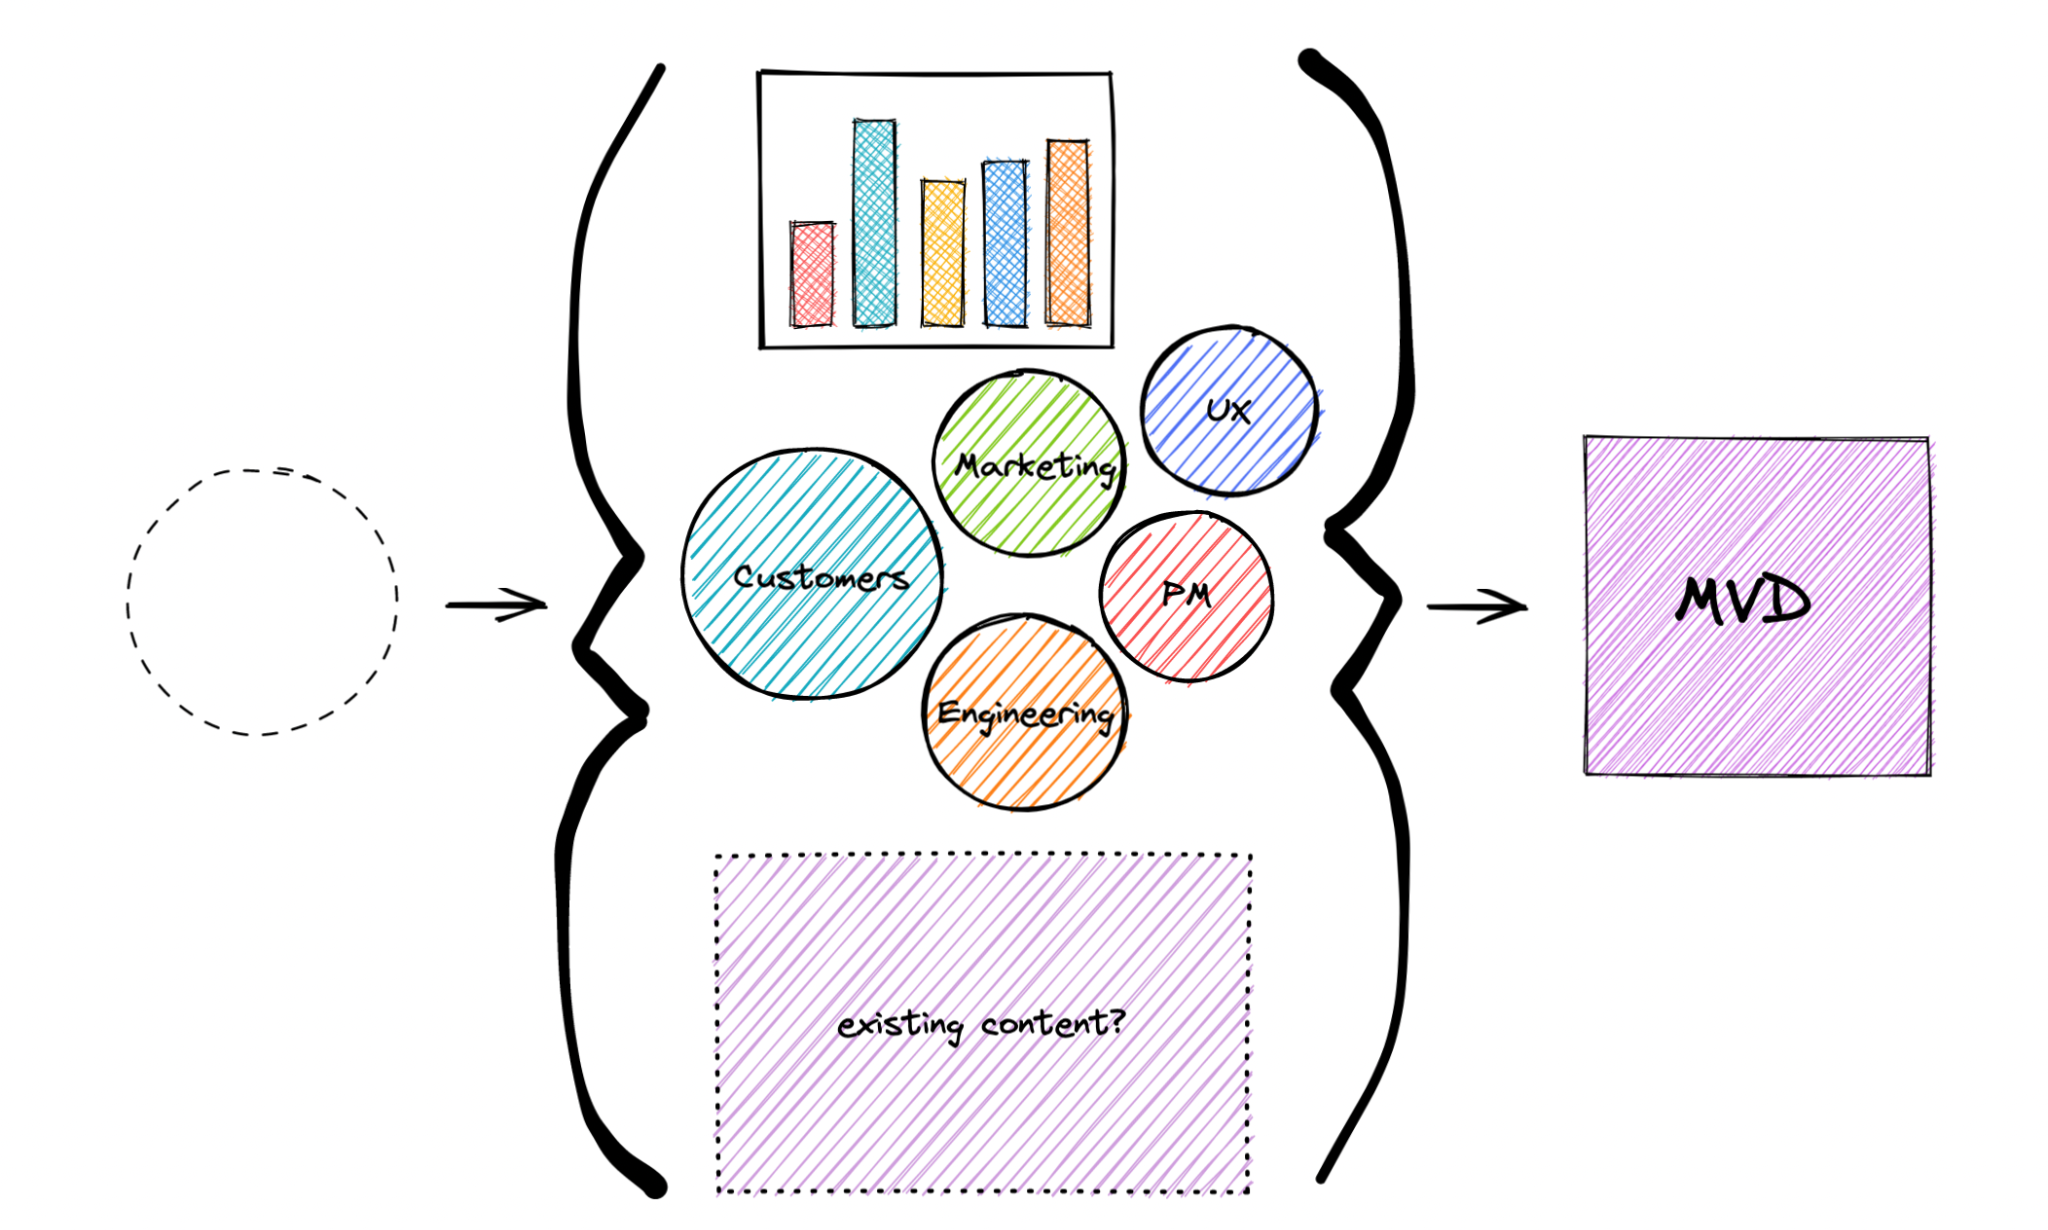 """Diagram with a transparent dotted circle pointing to {} encasing a column chart, circles with customers, marketing, UX, engineering, and PM, plus a dotted outlined rectangle with """"existing content?"""" inside pointing to an MVD square, representing the pre-planning process."""